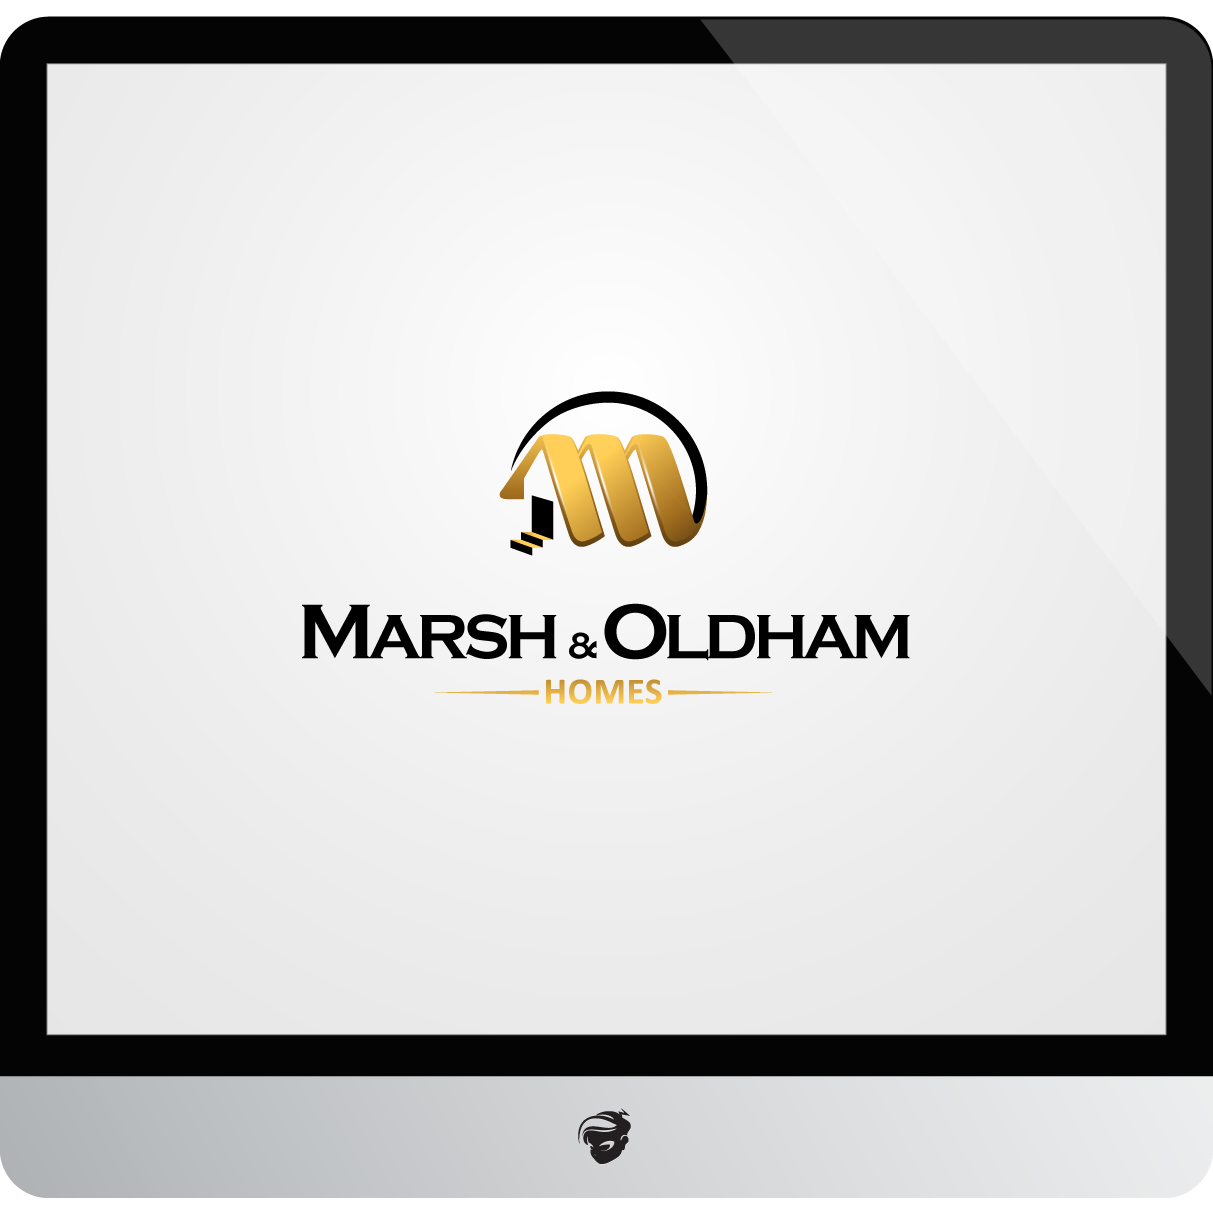 Logo Design by zesthar - Entry No. 160 in the Logo Design Contest Artistic Logo Design for Marsh & Oldham Homes.